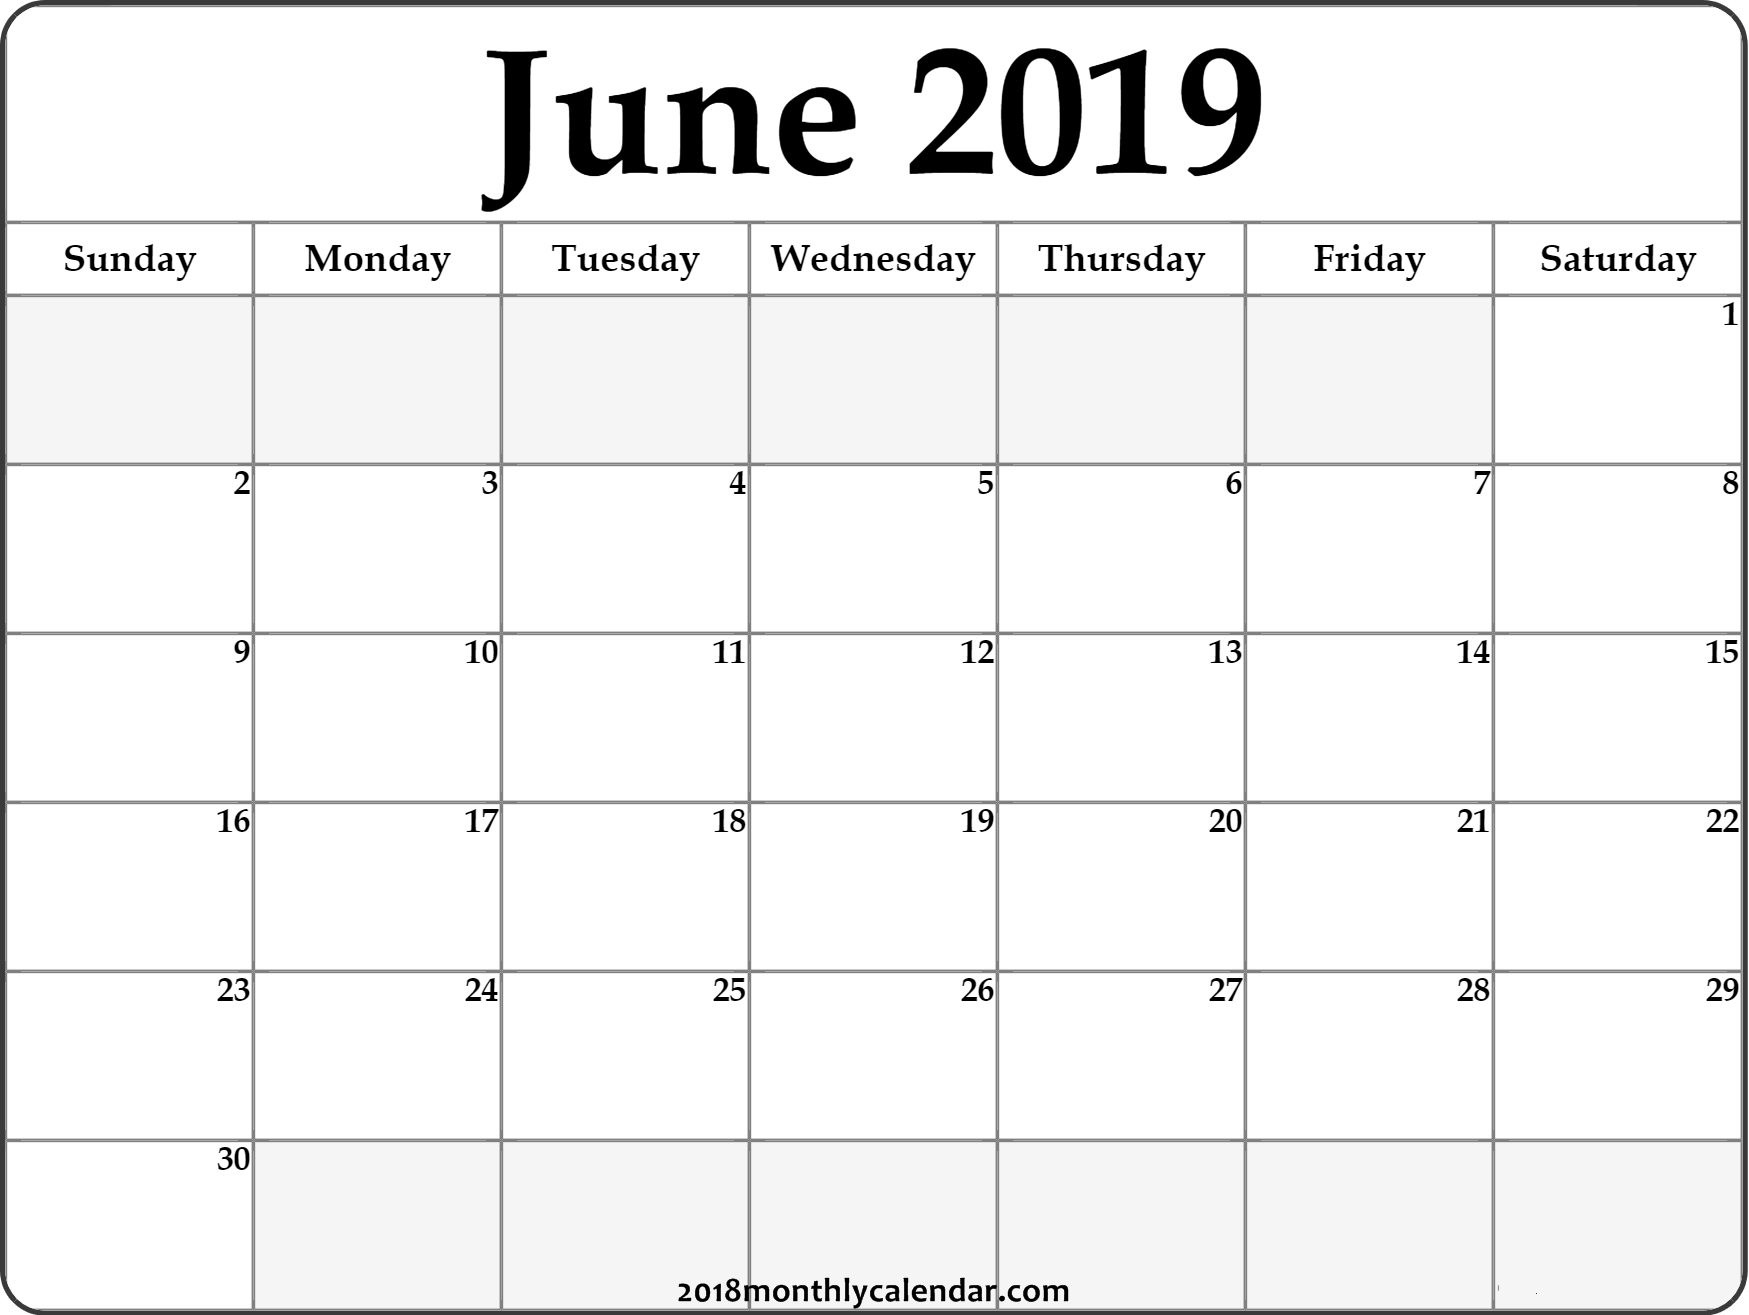 June Calendar 2019 #june #2019Calendar #june2019 #junecalendar throughout Free Calendars To Print Without Downloading